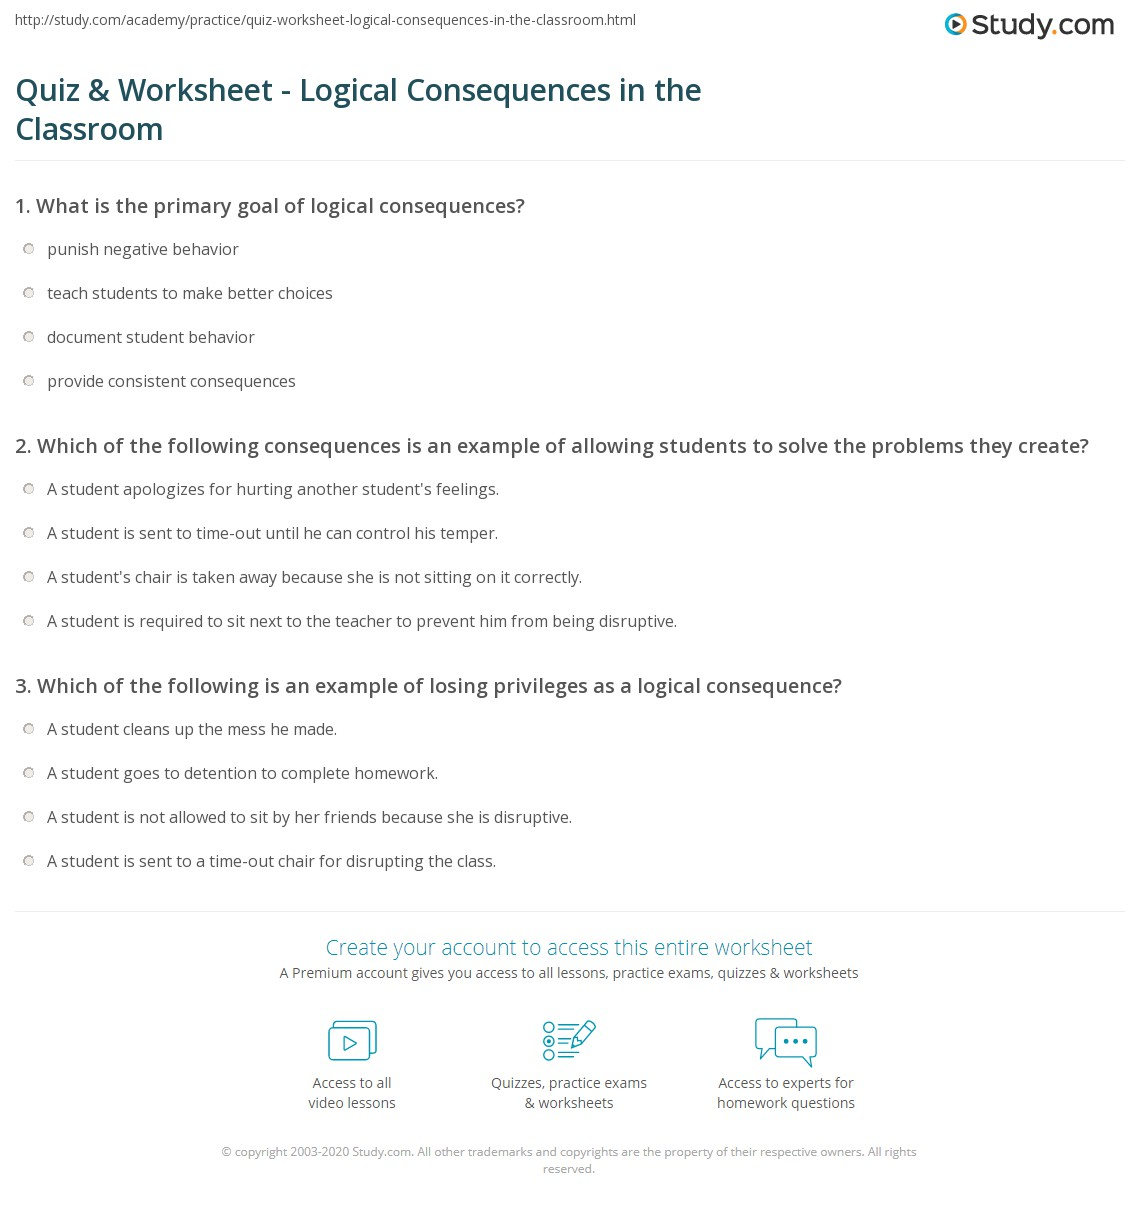 Worksheets Choices And Consequences Worksheet quiz worksheet logical consequences in the classroom study com print using definition examples worksheet